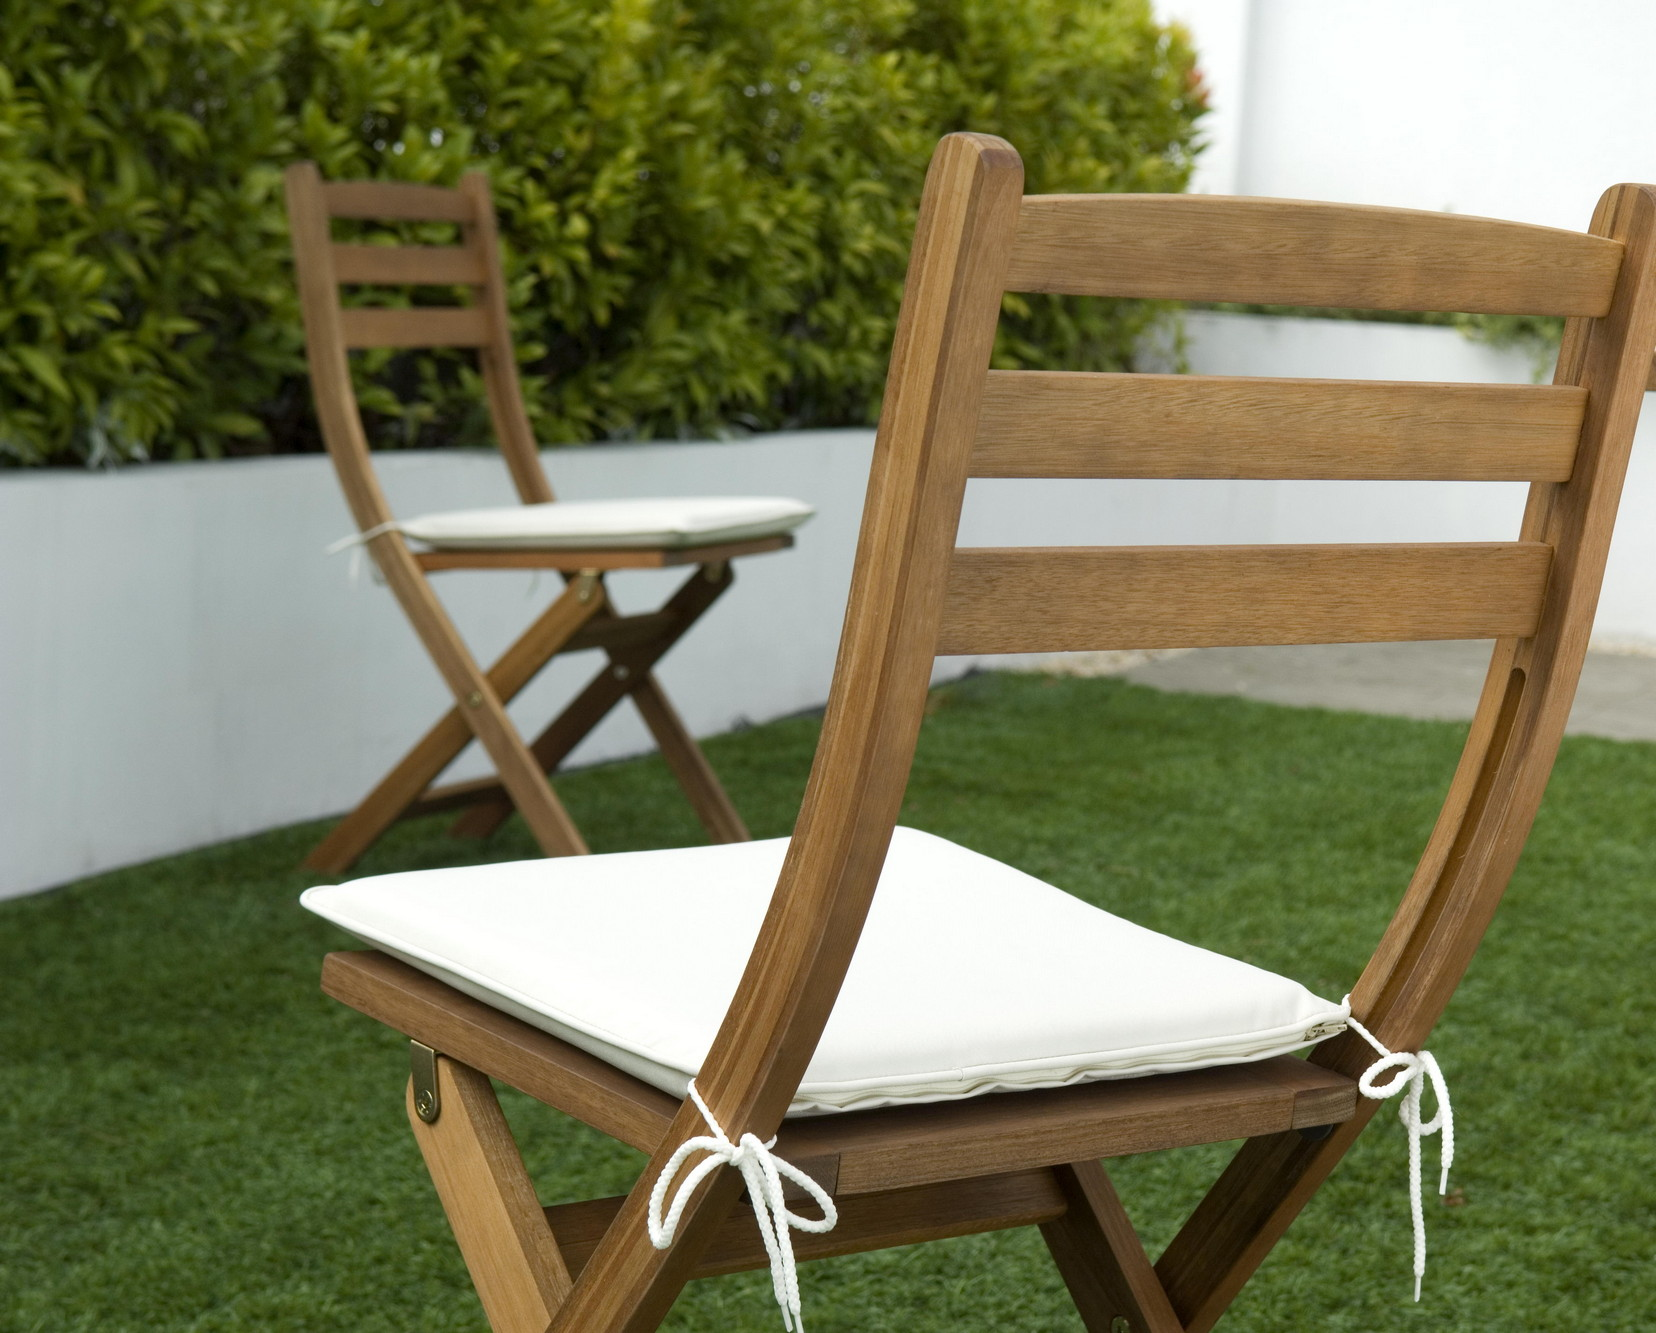 Cool Choose the right style and size wooden garden recliners